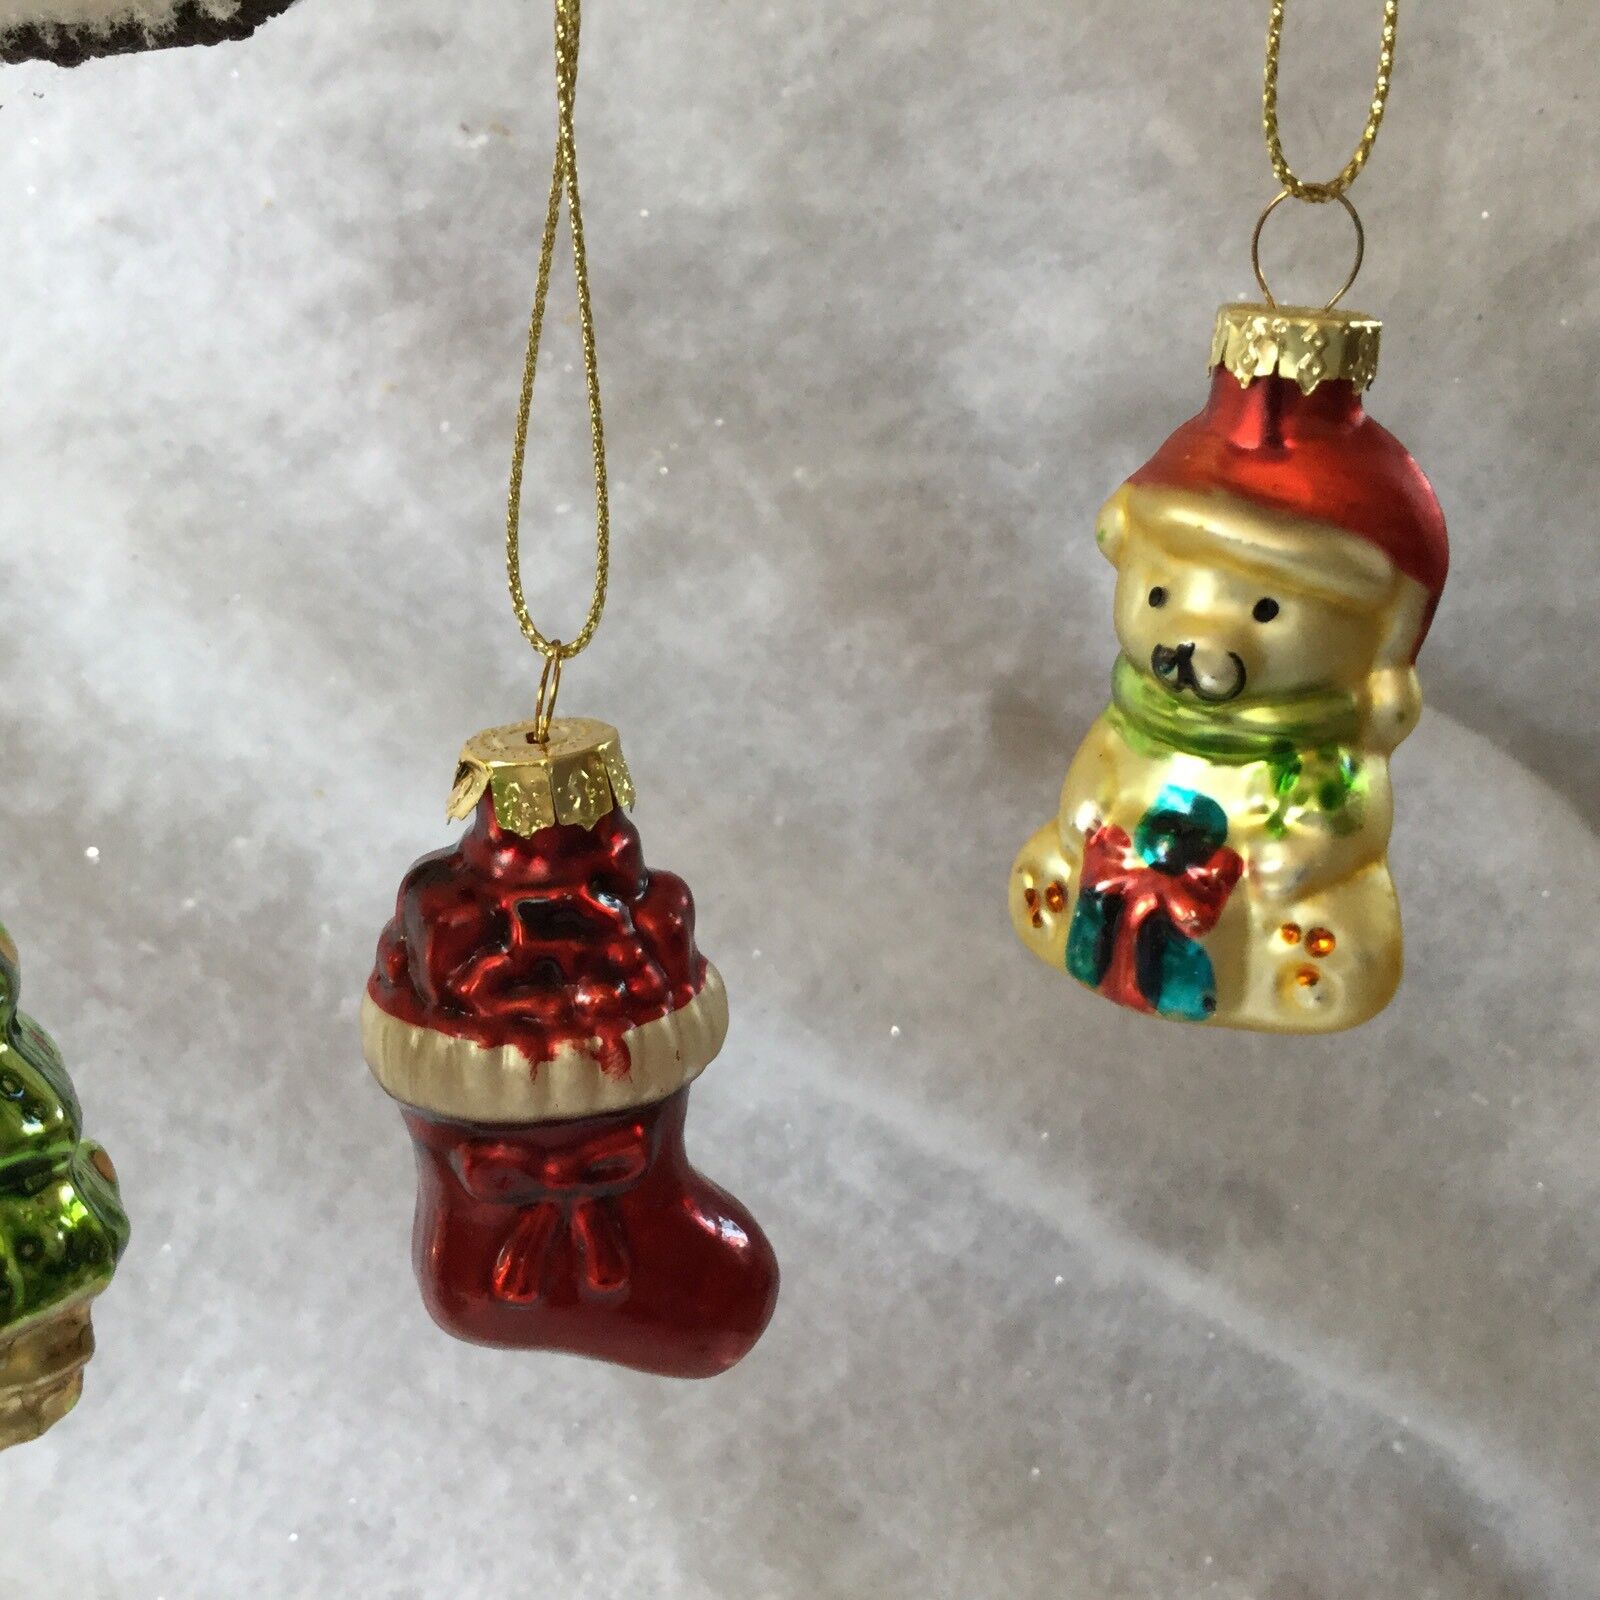 6 X Vintage Retro Style Glass Christmas Tree Decorations